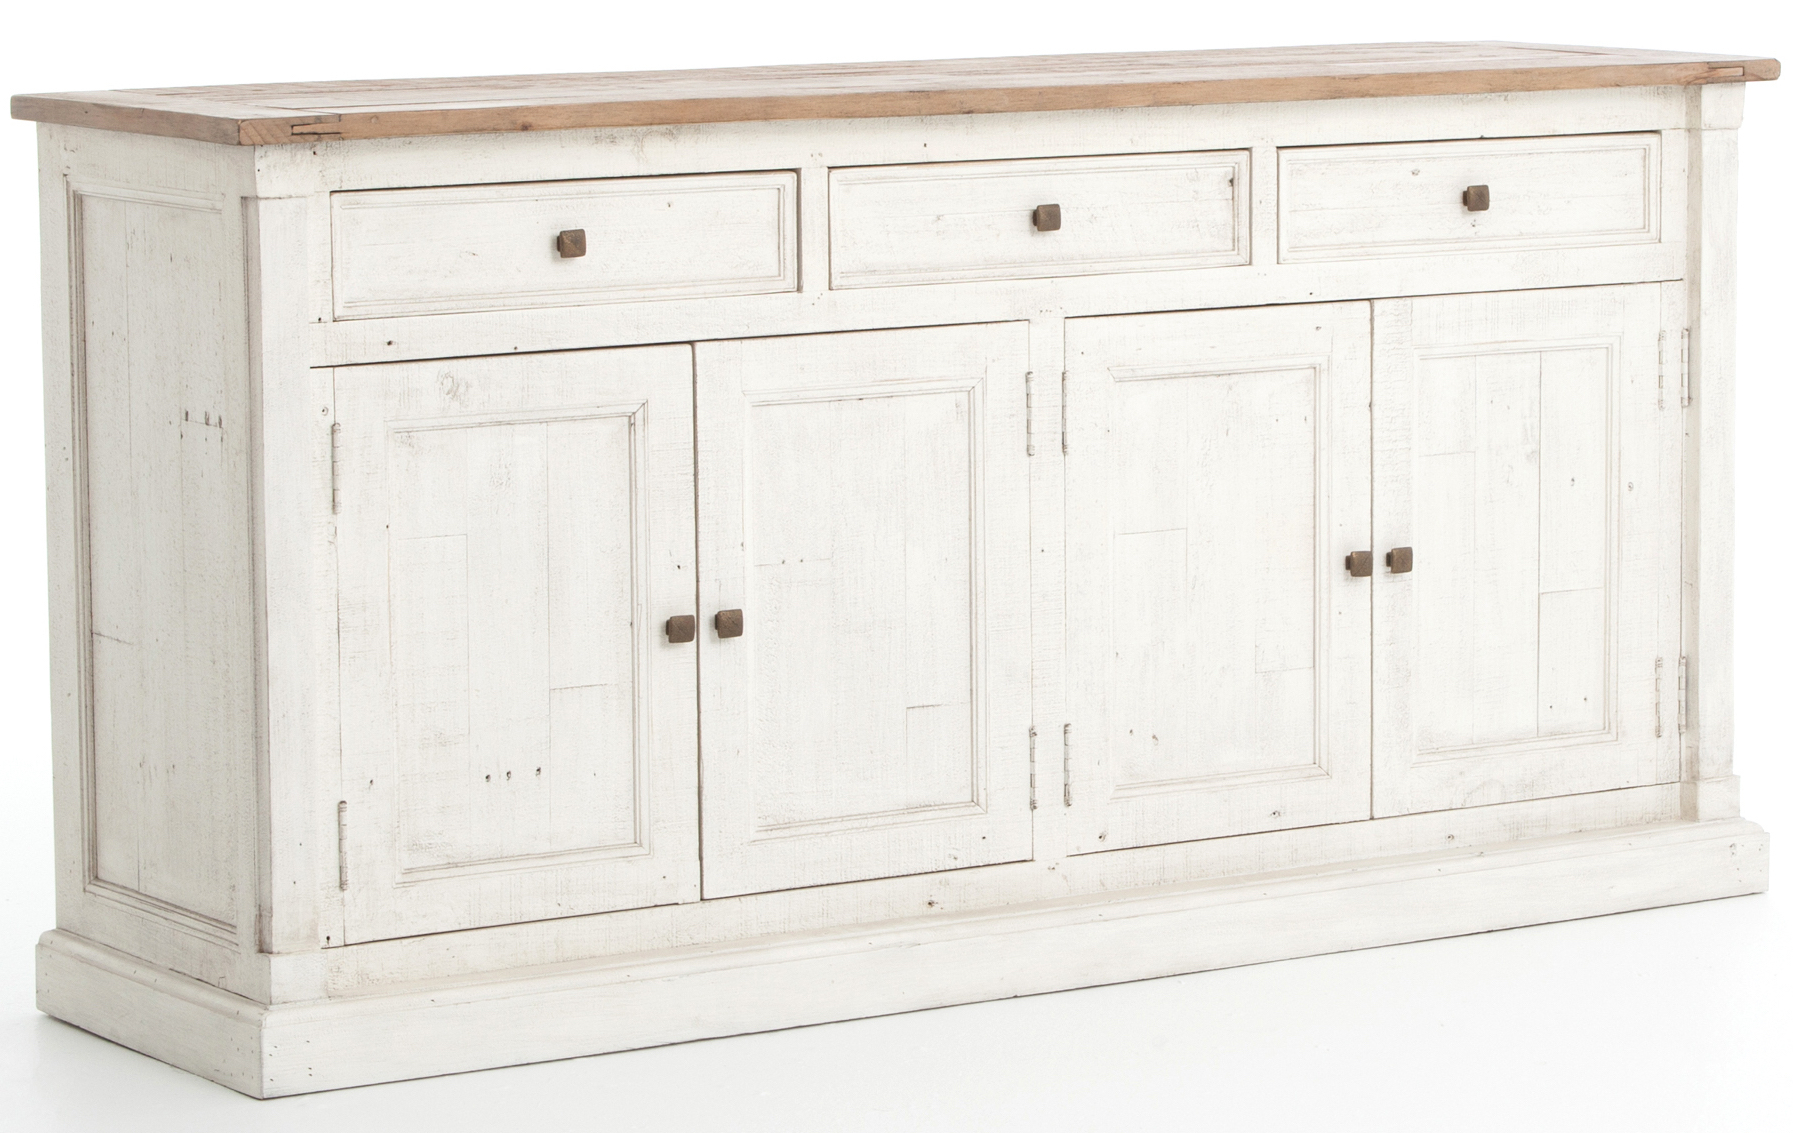 Htgt Furniture Intended For Current Reclaimed Elm 71 Inch Sideboards (Gallery 6 of 20)